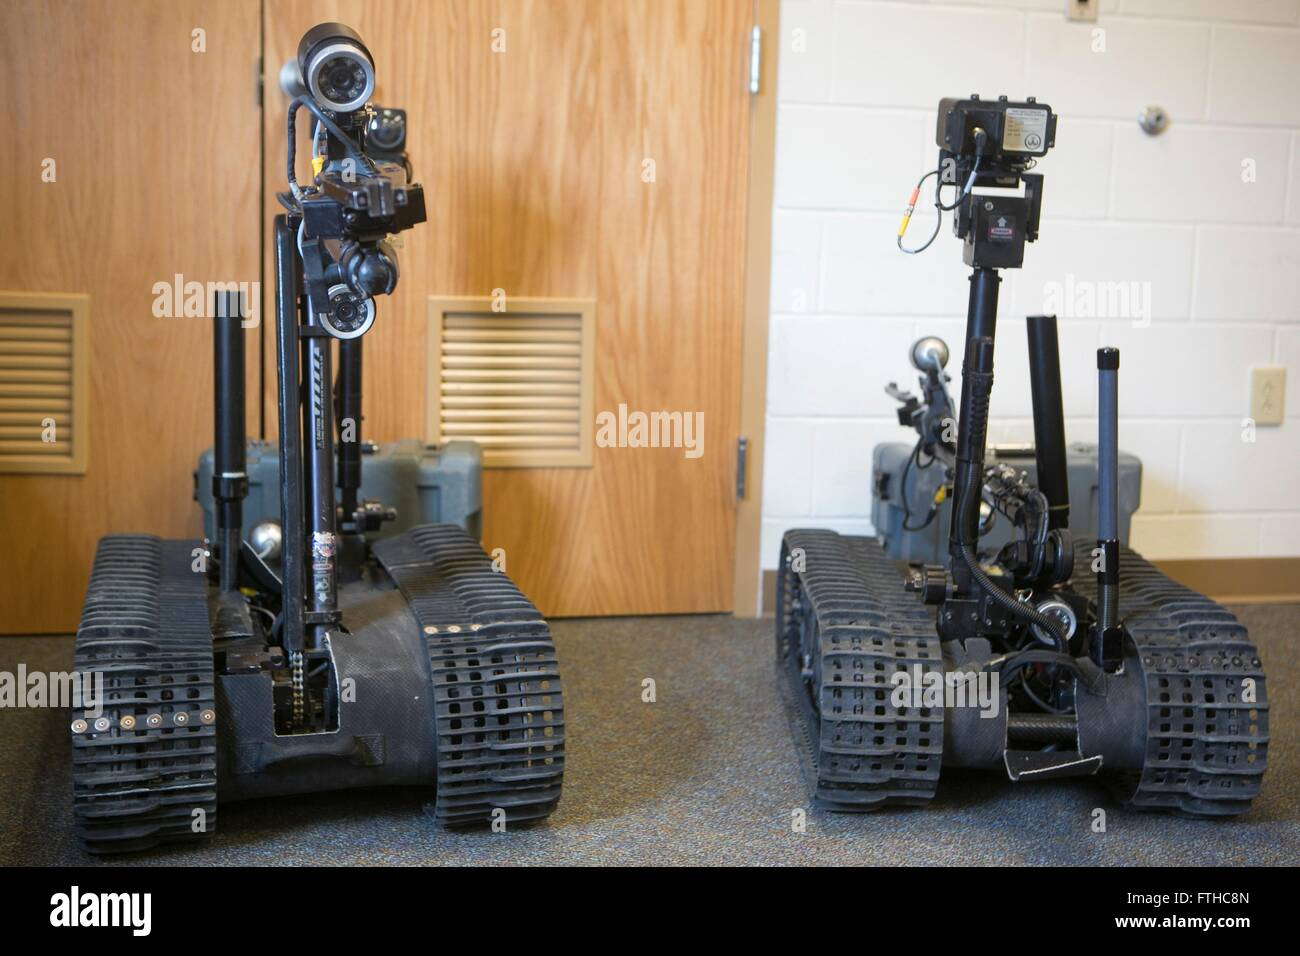 Military Used Robots Stock Photos & Military Used Robots